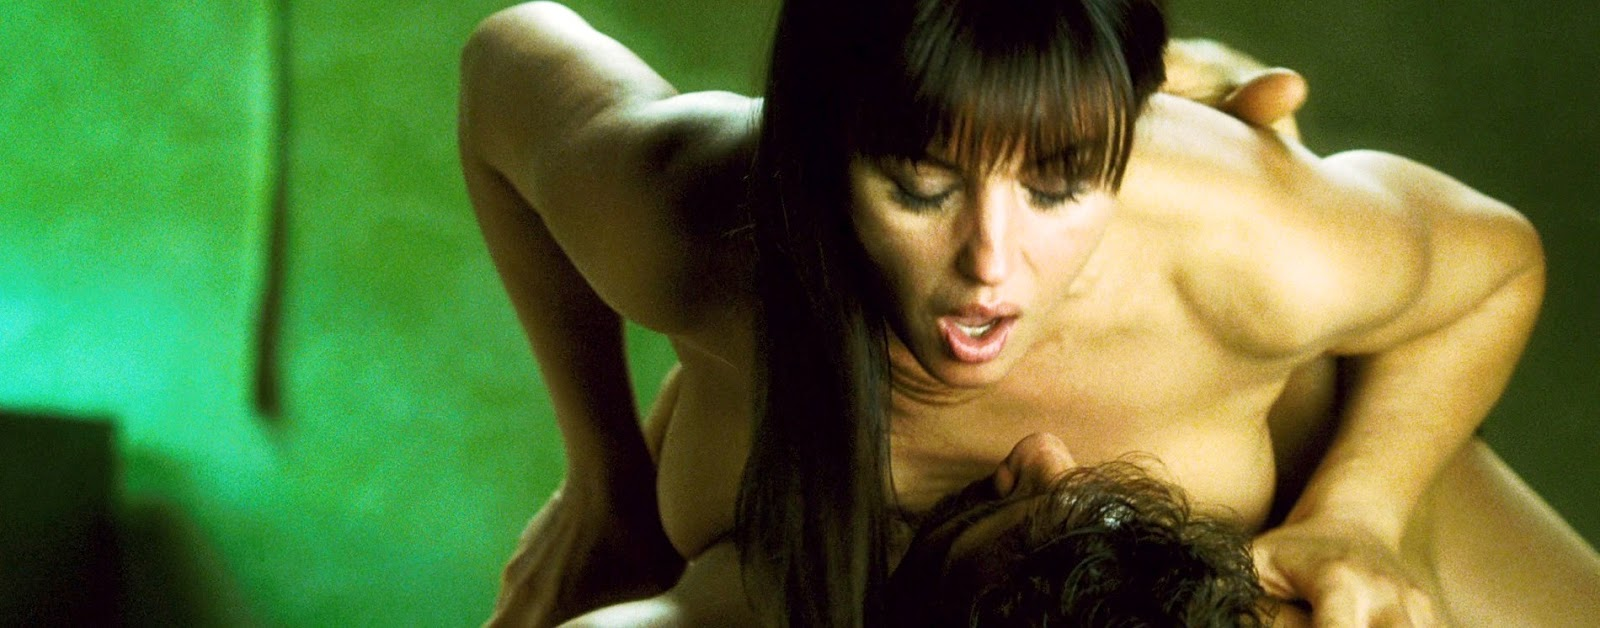 Monica bellucci naked video